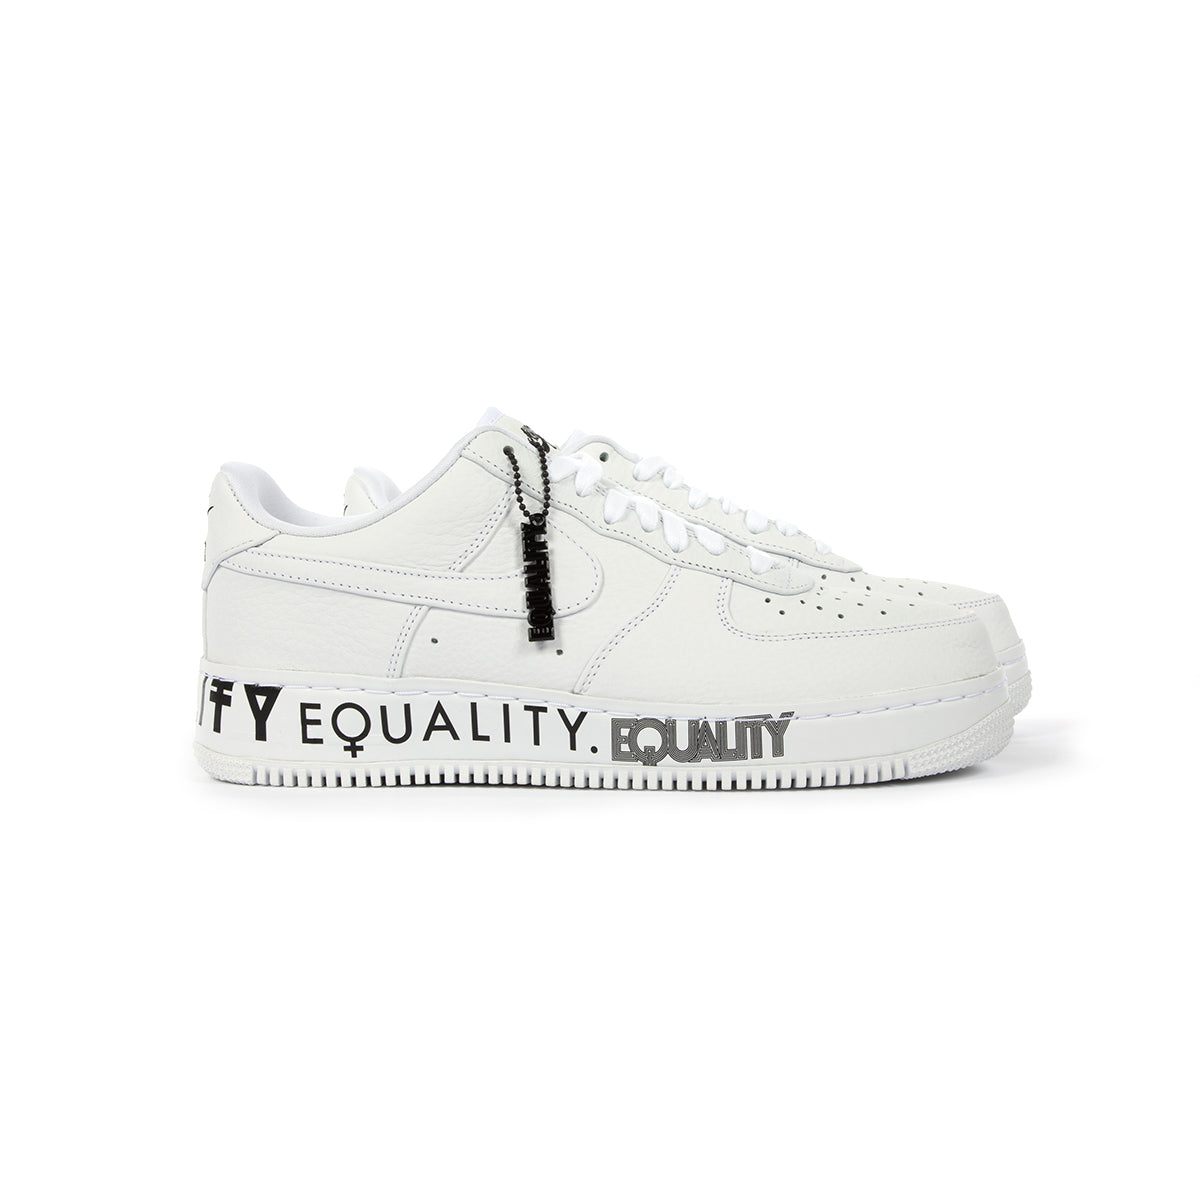 ConceptsIntl | Nike Air Force 1 Low CMFT Equality (White